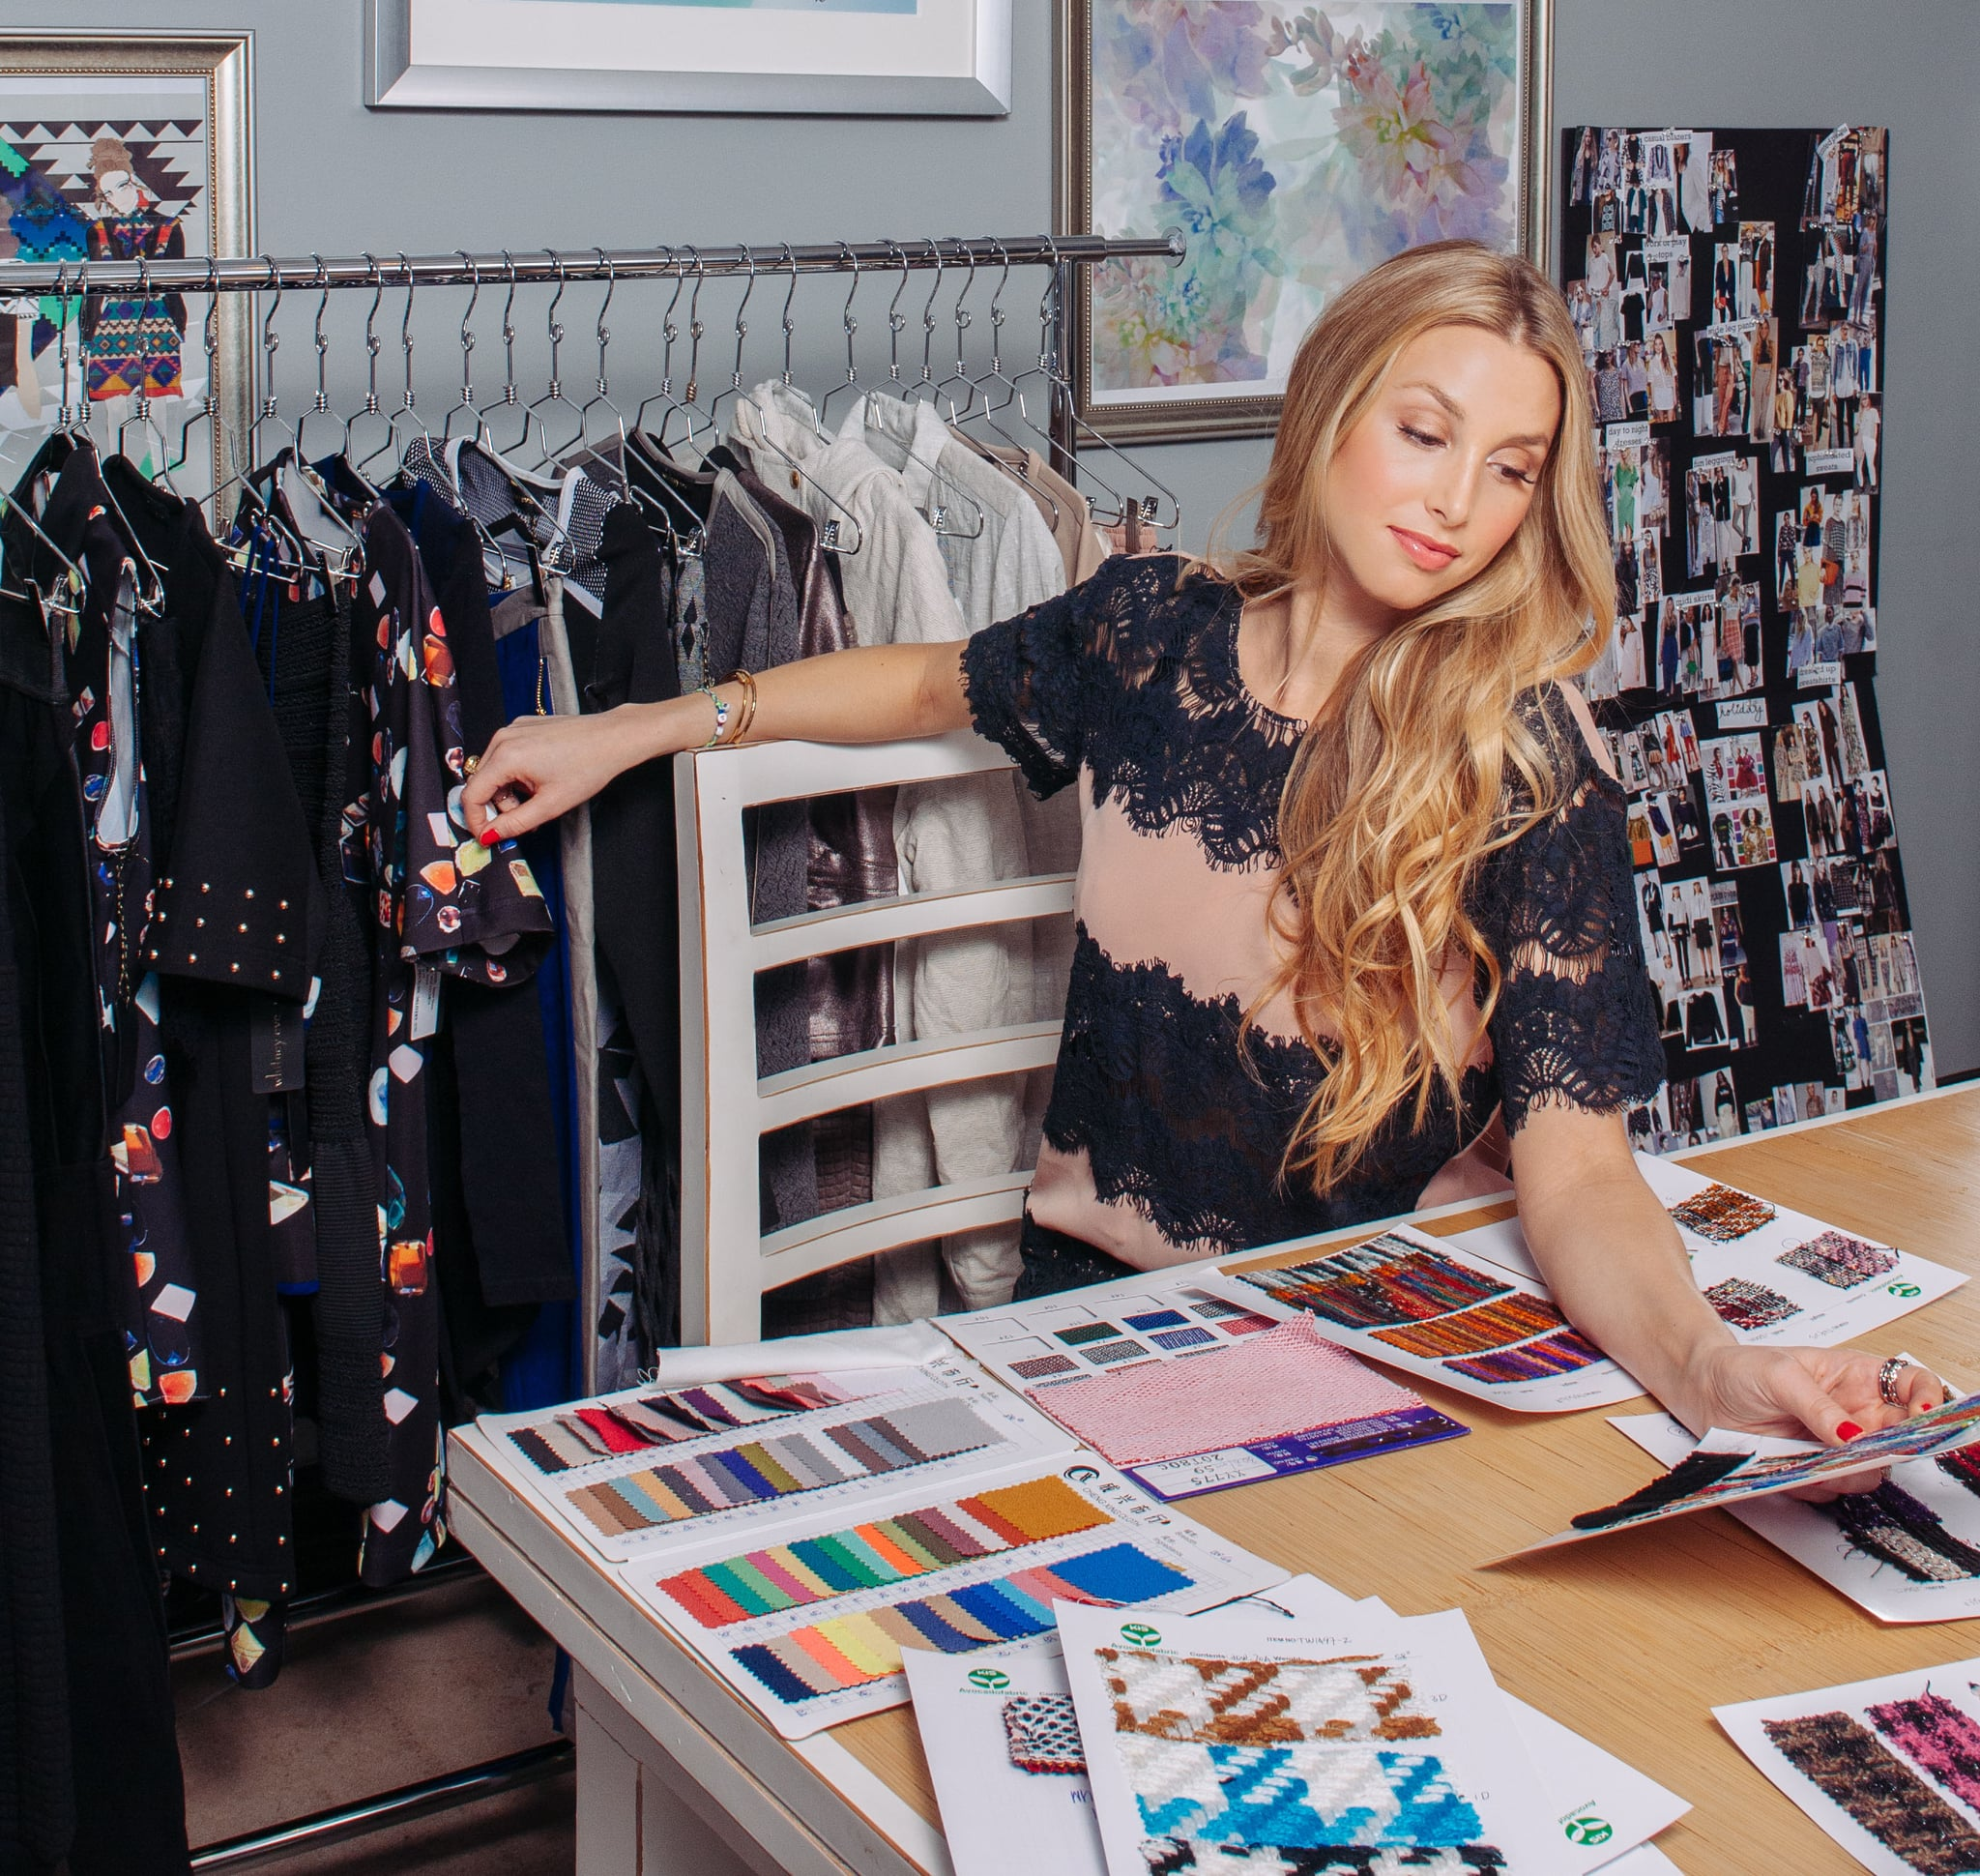 PS: It's definitely not all wedding all the time. You've got Whitney Eve, your fashion line. How has it evolved since it launched in 2009? WP: When I originally started this, it was an art project for me. I love fashion, and I grew up in the fashion industry, and so when I was doing it, I was designing things I thought I was going to wear to red carpet events — 100 percent silk and velvets and all these embellished fabrics. I realized that this is not true to the core of me. I'm comfortable, I am an LA girl, a beach girl, so I started to want to design things that I was going to feel comfortable wearing every day. So it evolved into something a little bit more sporty and casual, which is where the line is headed. It's something every girl can wear. PS: Be honest. Do you design for yourself? WP: All the time. That's the whole fun — that you're getting a new wardrobe for yourself every collection. When people are looking to me for my line, they're looking to see what I would want to wear, what my style is. So everything in my collection is what I feel like my wardrobe is missing. Like, I'm a sucker for a good pair of sweatpants. And I'm trying to master the dressed-up sweats right now.  PS: And you are officially a handbag designer! Tell us about the tote bag line you've created. WP: It's for the Diet Coke Tastemakers Project, and I designed four different tote bags, each with a different motif — a quirky look that people would love. People can vote online now through June 15, and when you vote you're automatically entered to win a full-on fashion experience with me at Fashion Week. And the winning bag will be sold at Target. It's just a fun way for people who love fashion to get involved, and they have a say in creating something in the fashion world.  Photo courtesy of Diet Coke